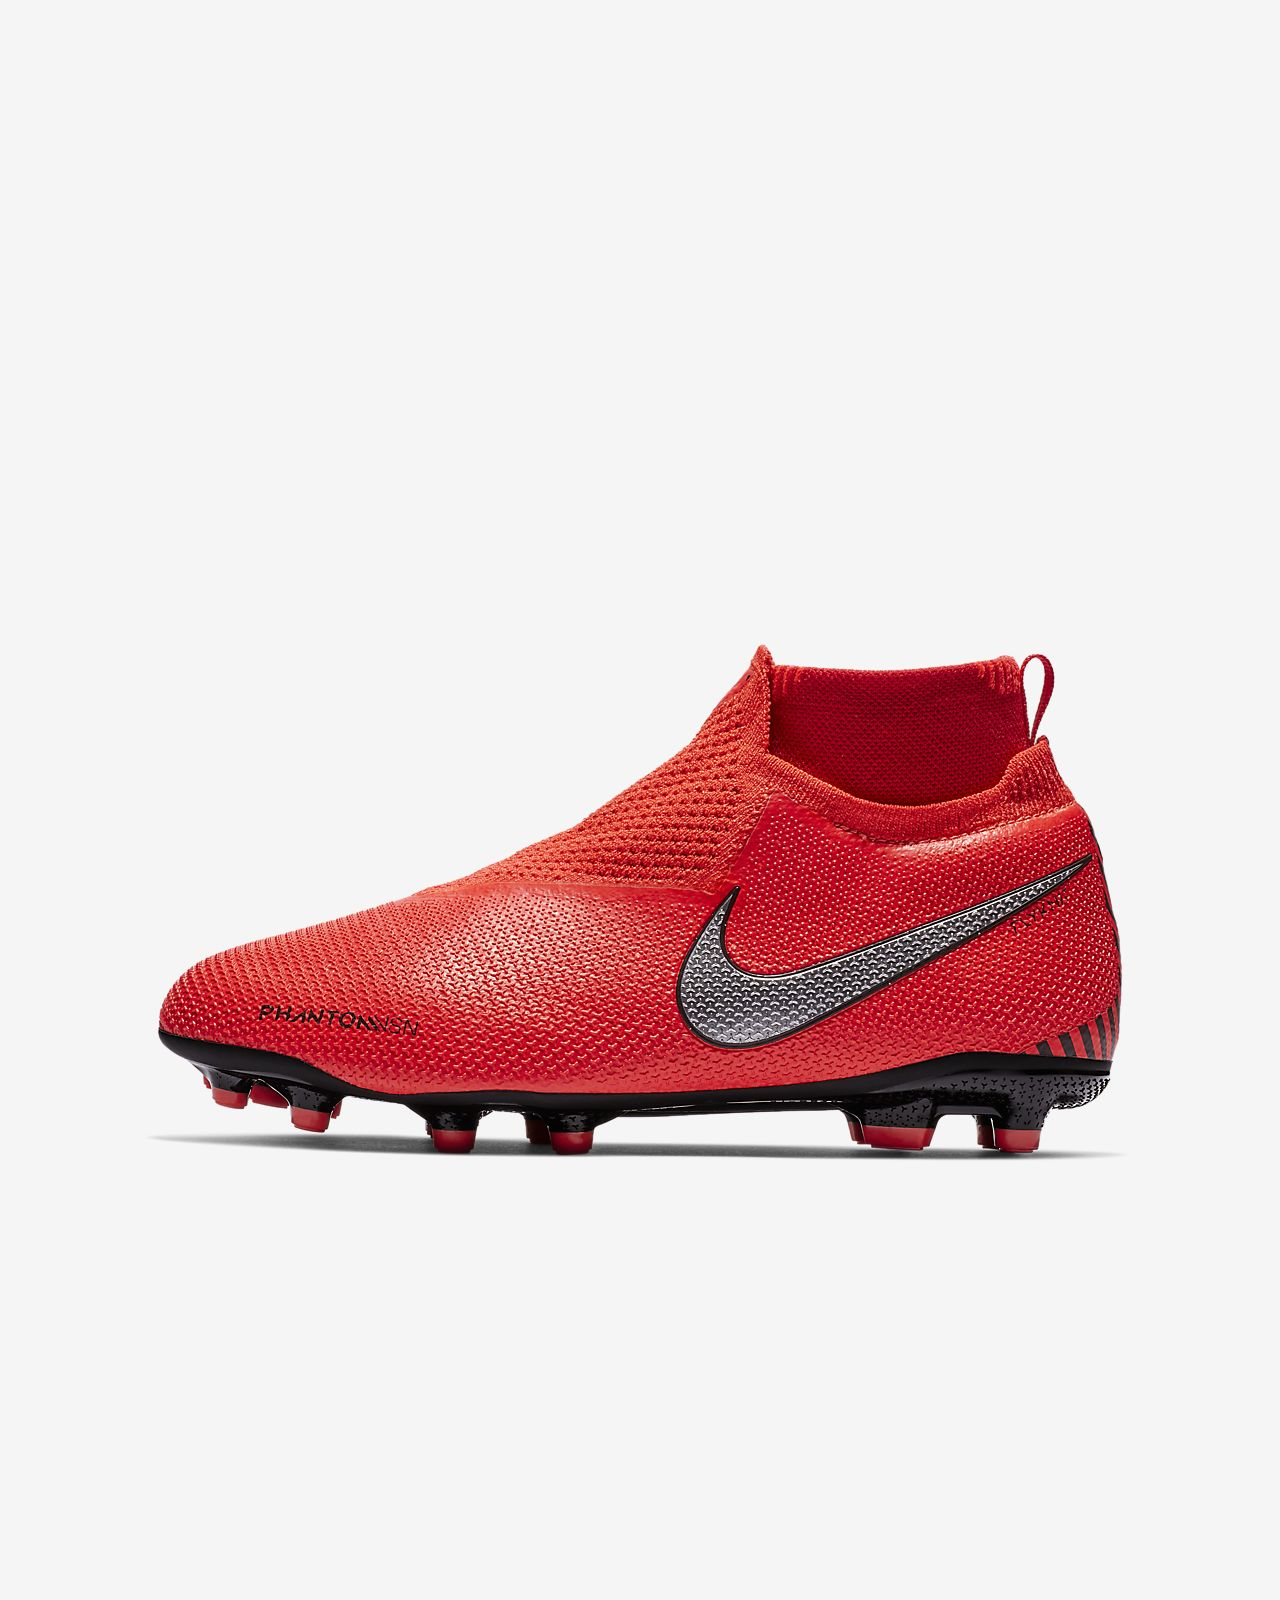 1f20581fc0 ... Scarpa da calcio multiterreno Nike Jr. PhantomVSN Elite Dynamic Fit  Game Over MG - Ragazzi